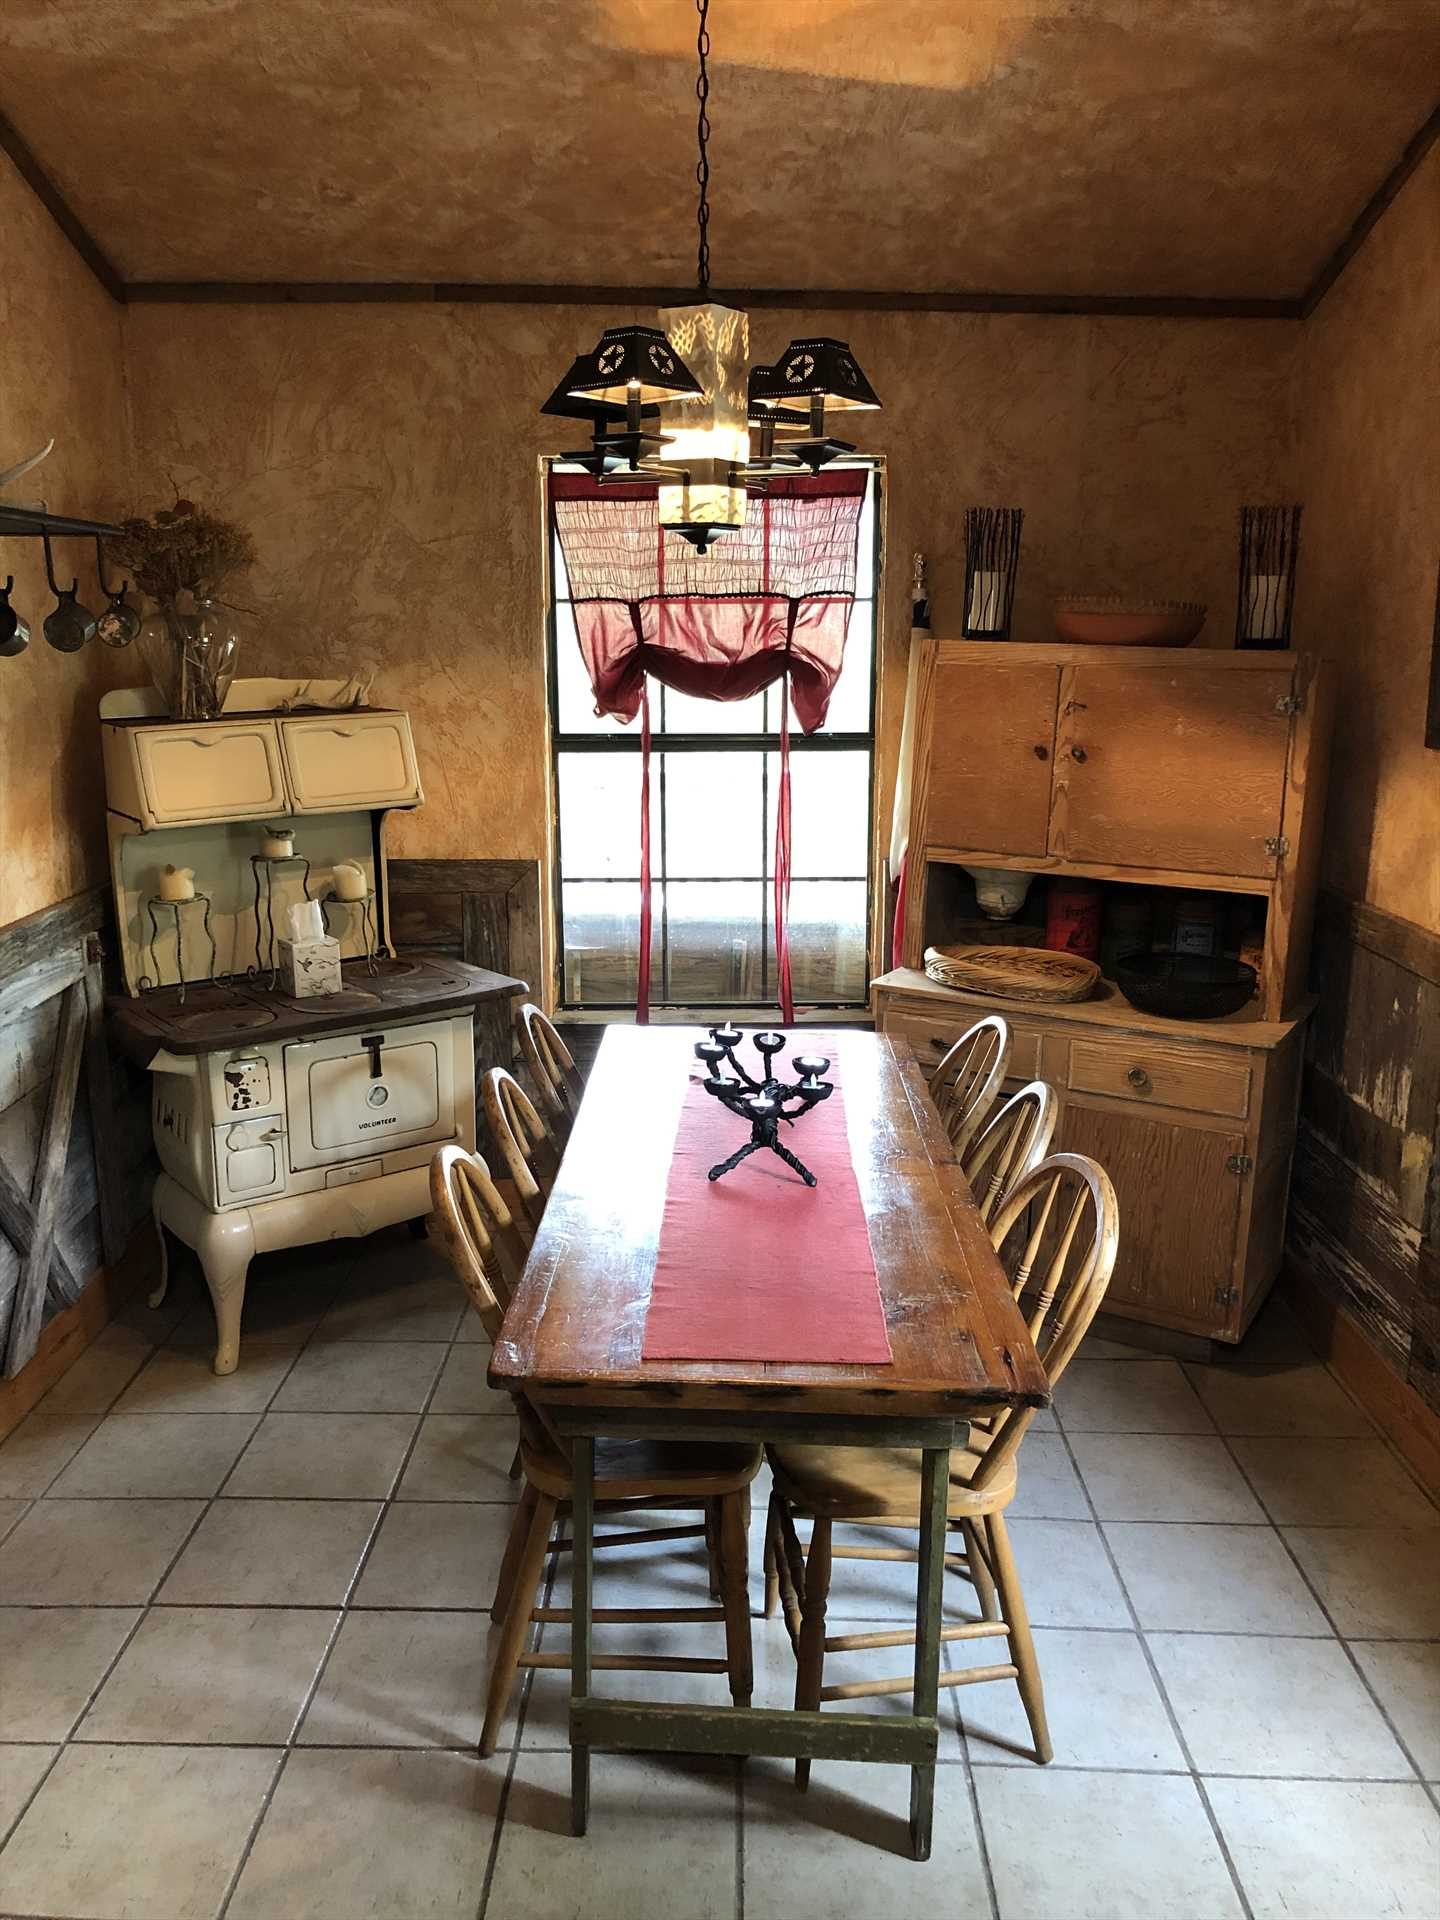 You can almost hear the nostalgic clang of the dinner bell calling you to this wonderful country kitchen!